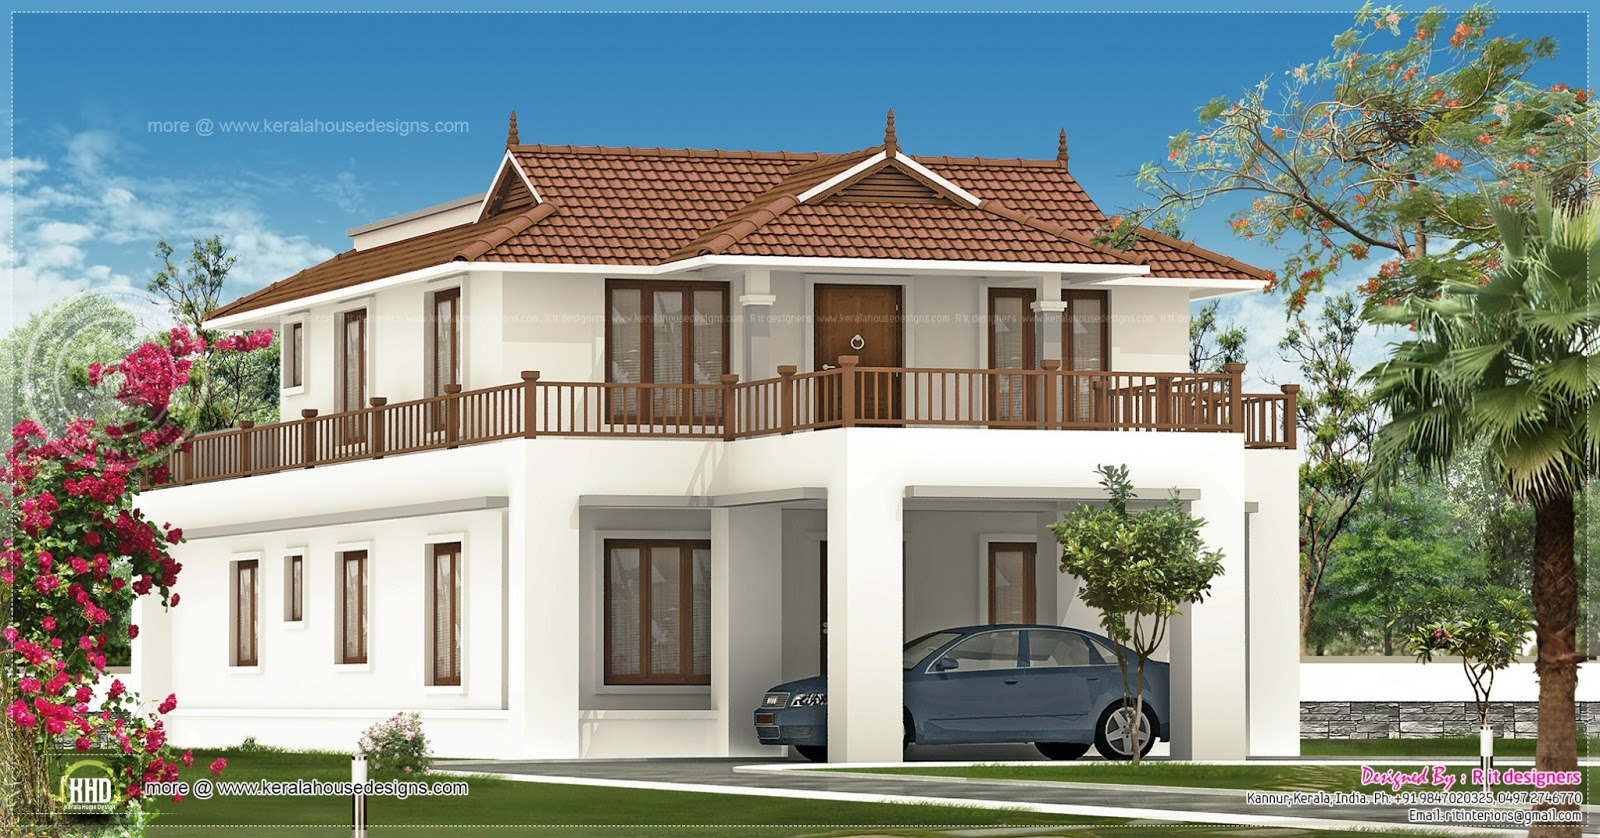 House Design Exterior 2820 Square Feet House Exterior Design Home Kerala Plans